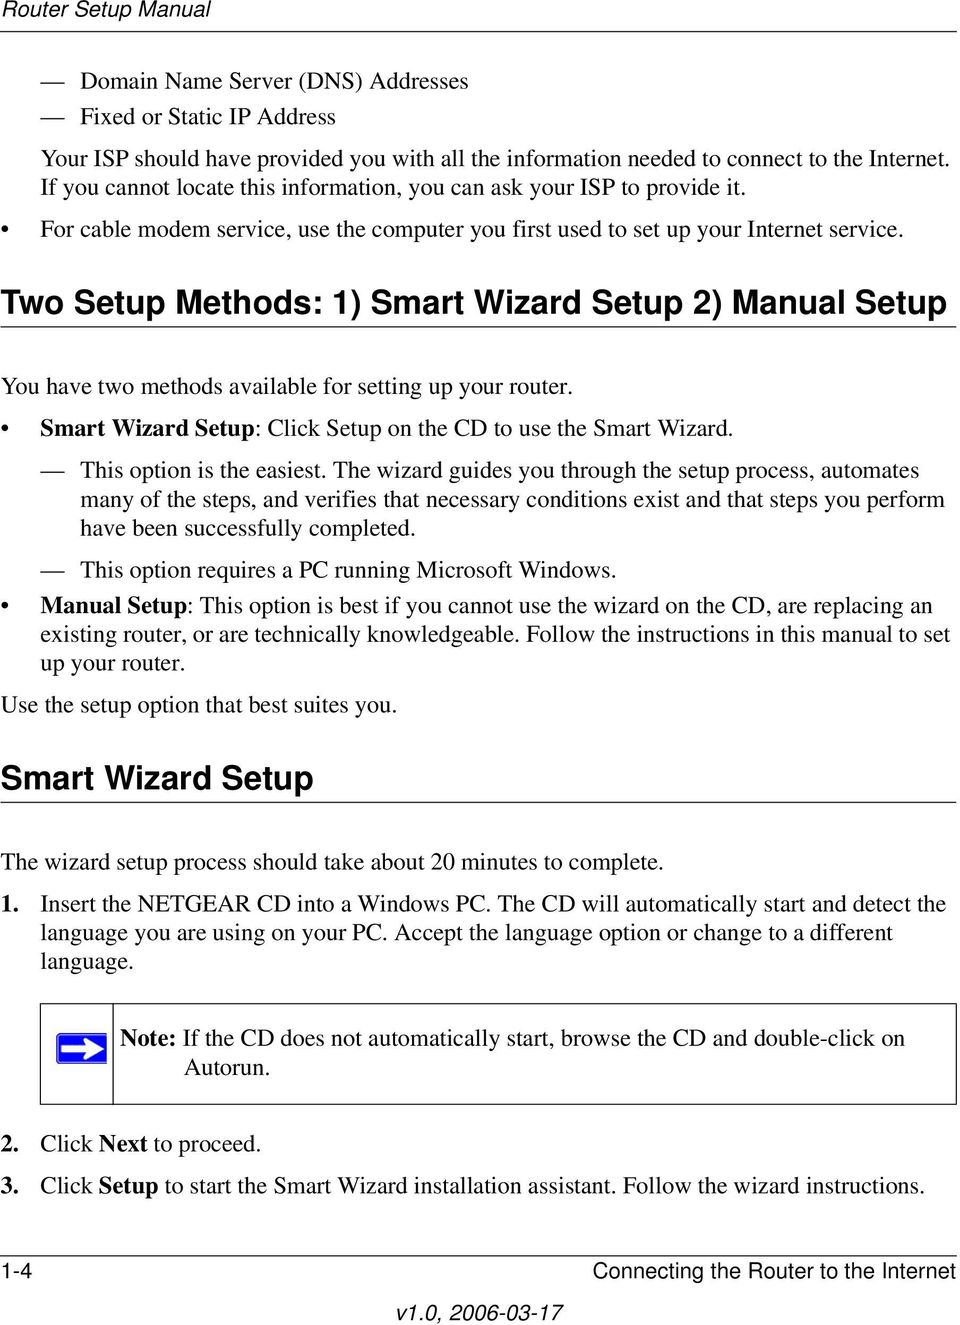 Two Setup Methods: 1) Smart Wizard Setup 2) Manual Setup You have two methods available for setting up your router. Smart Wizard Setup: Click Setup on the CD to use the Smart Wizard.